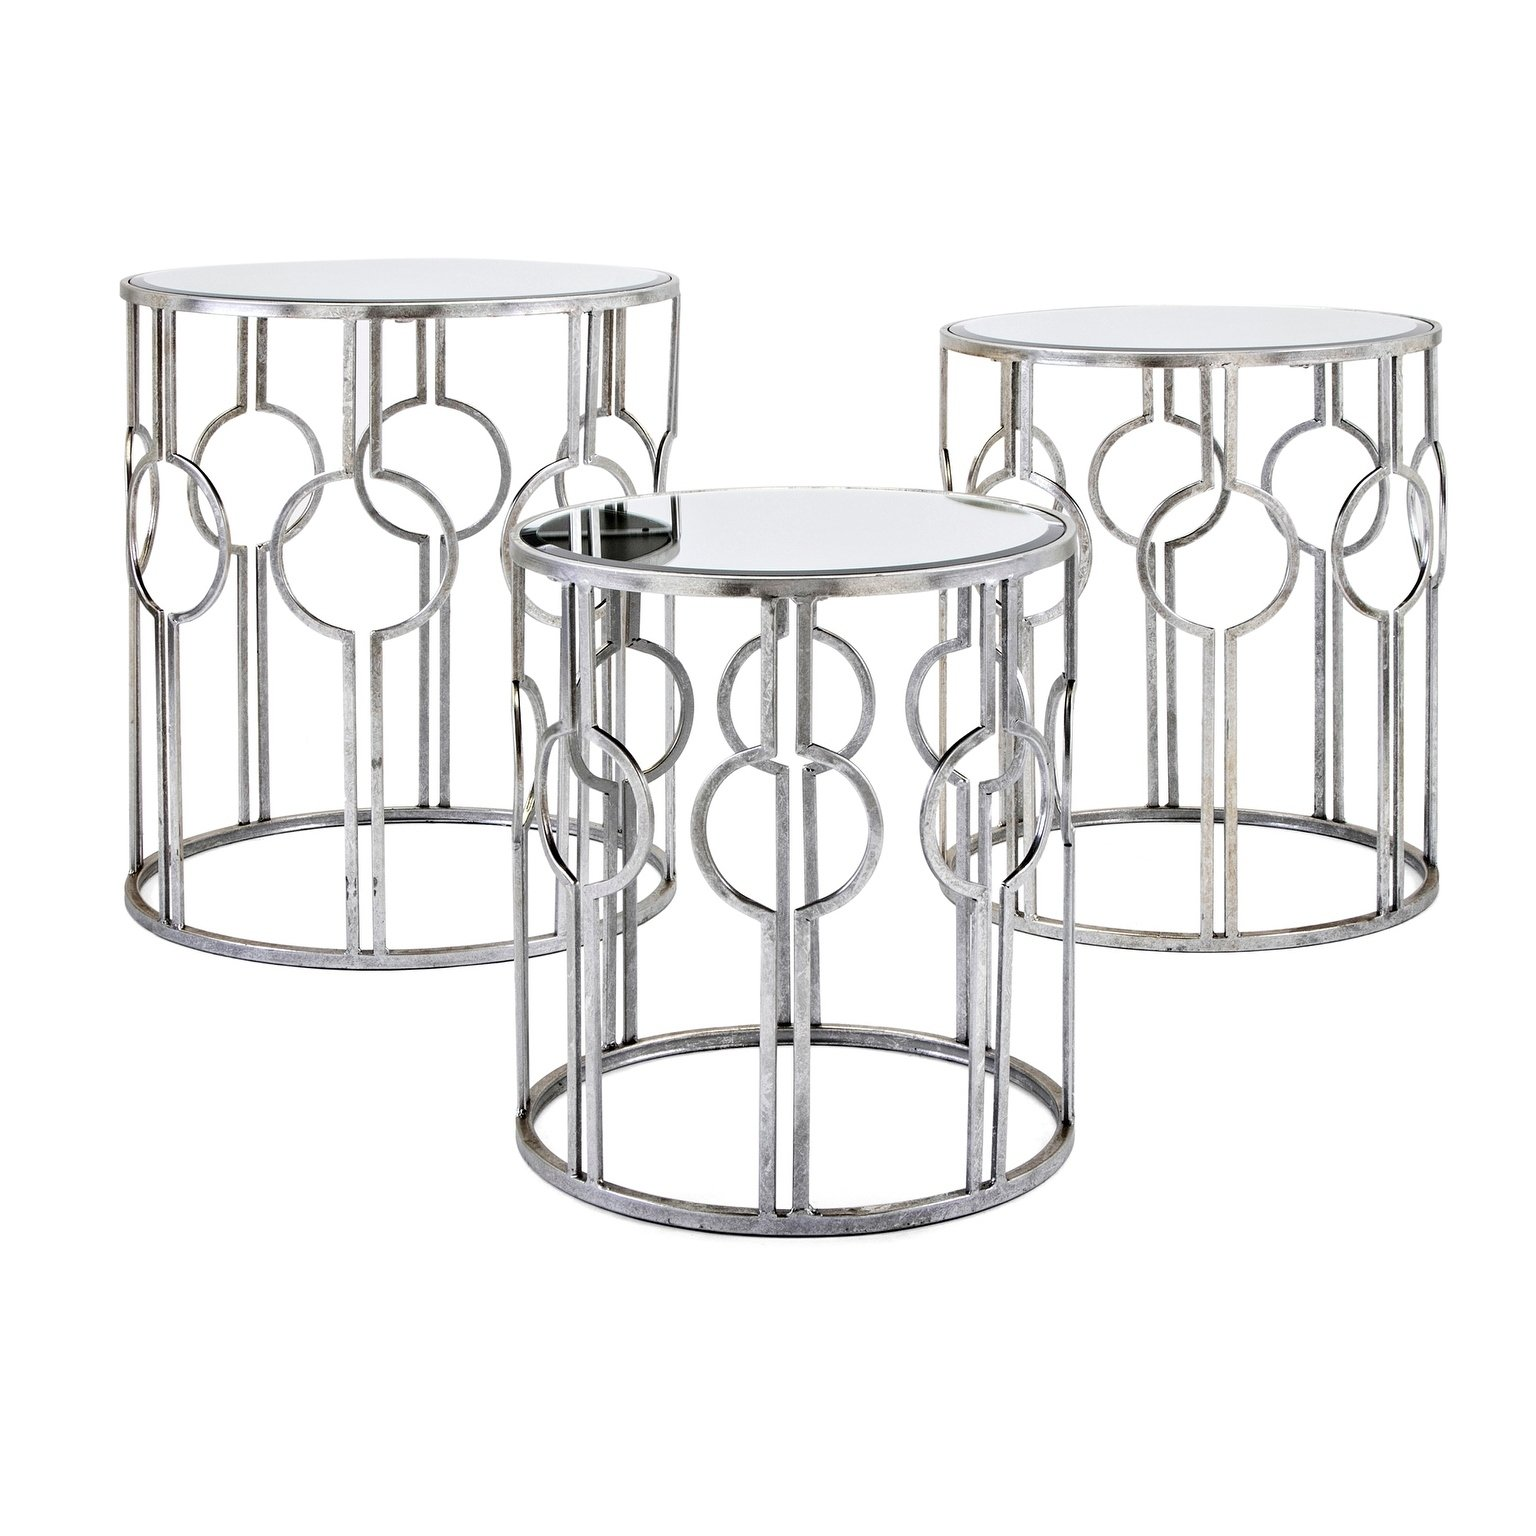 margaret antiqued silver mirror accent tables set table and free shipping today entryway bench ikea cottage coffee malm side ashley nesting rustic end sets corner cabinet baby